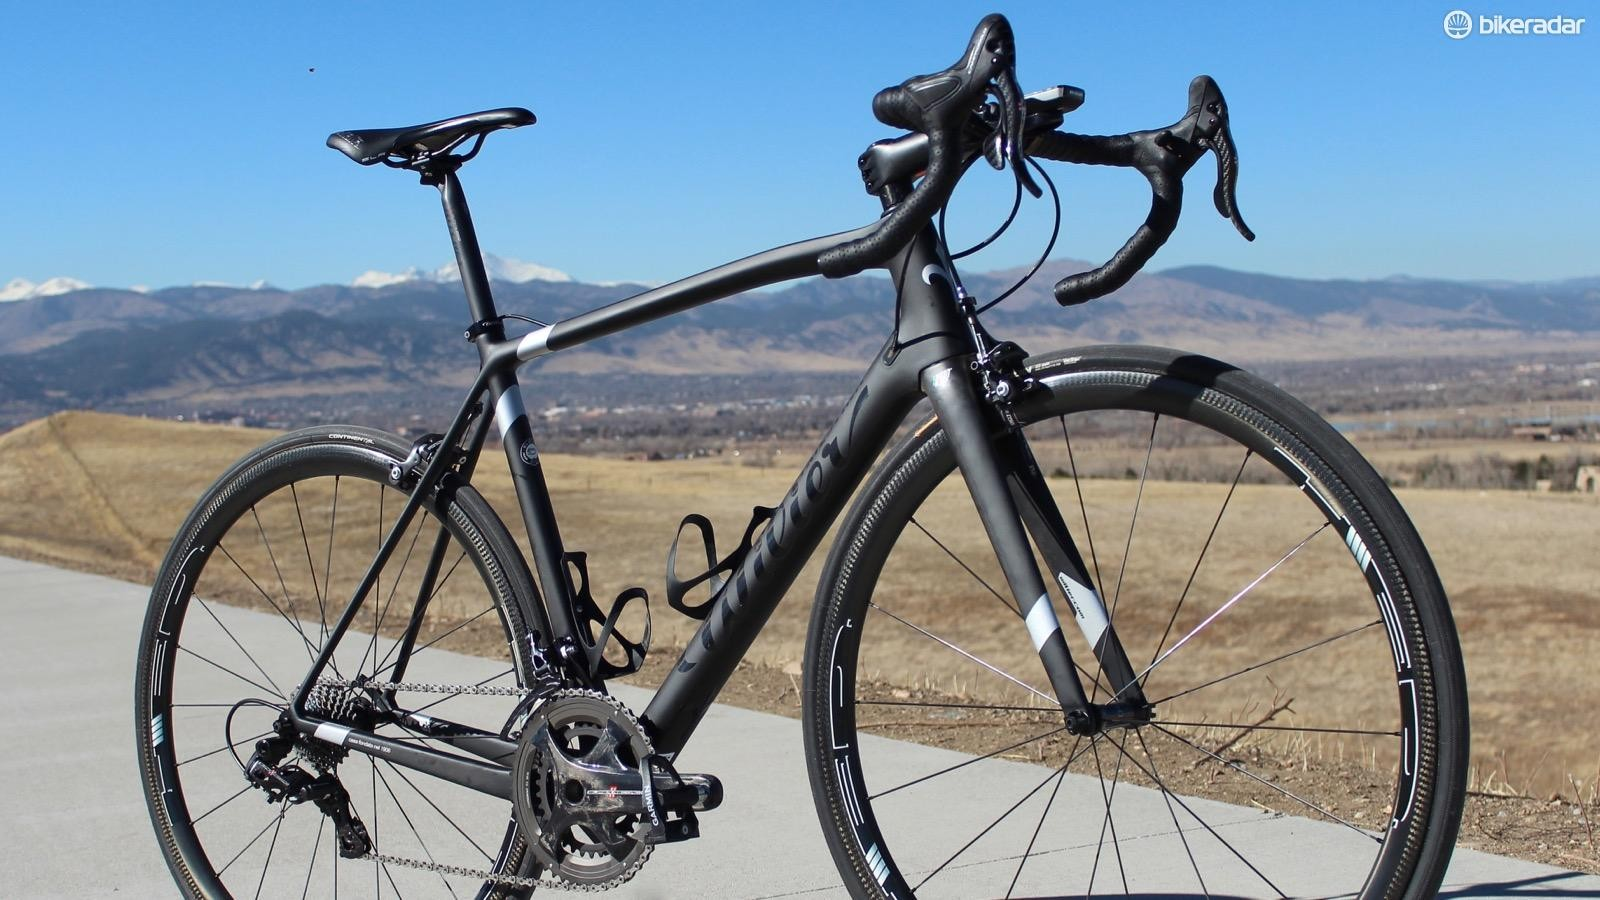 Wilier's Zero.6 is a nod to the frame's weight: 0.68kg